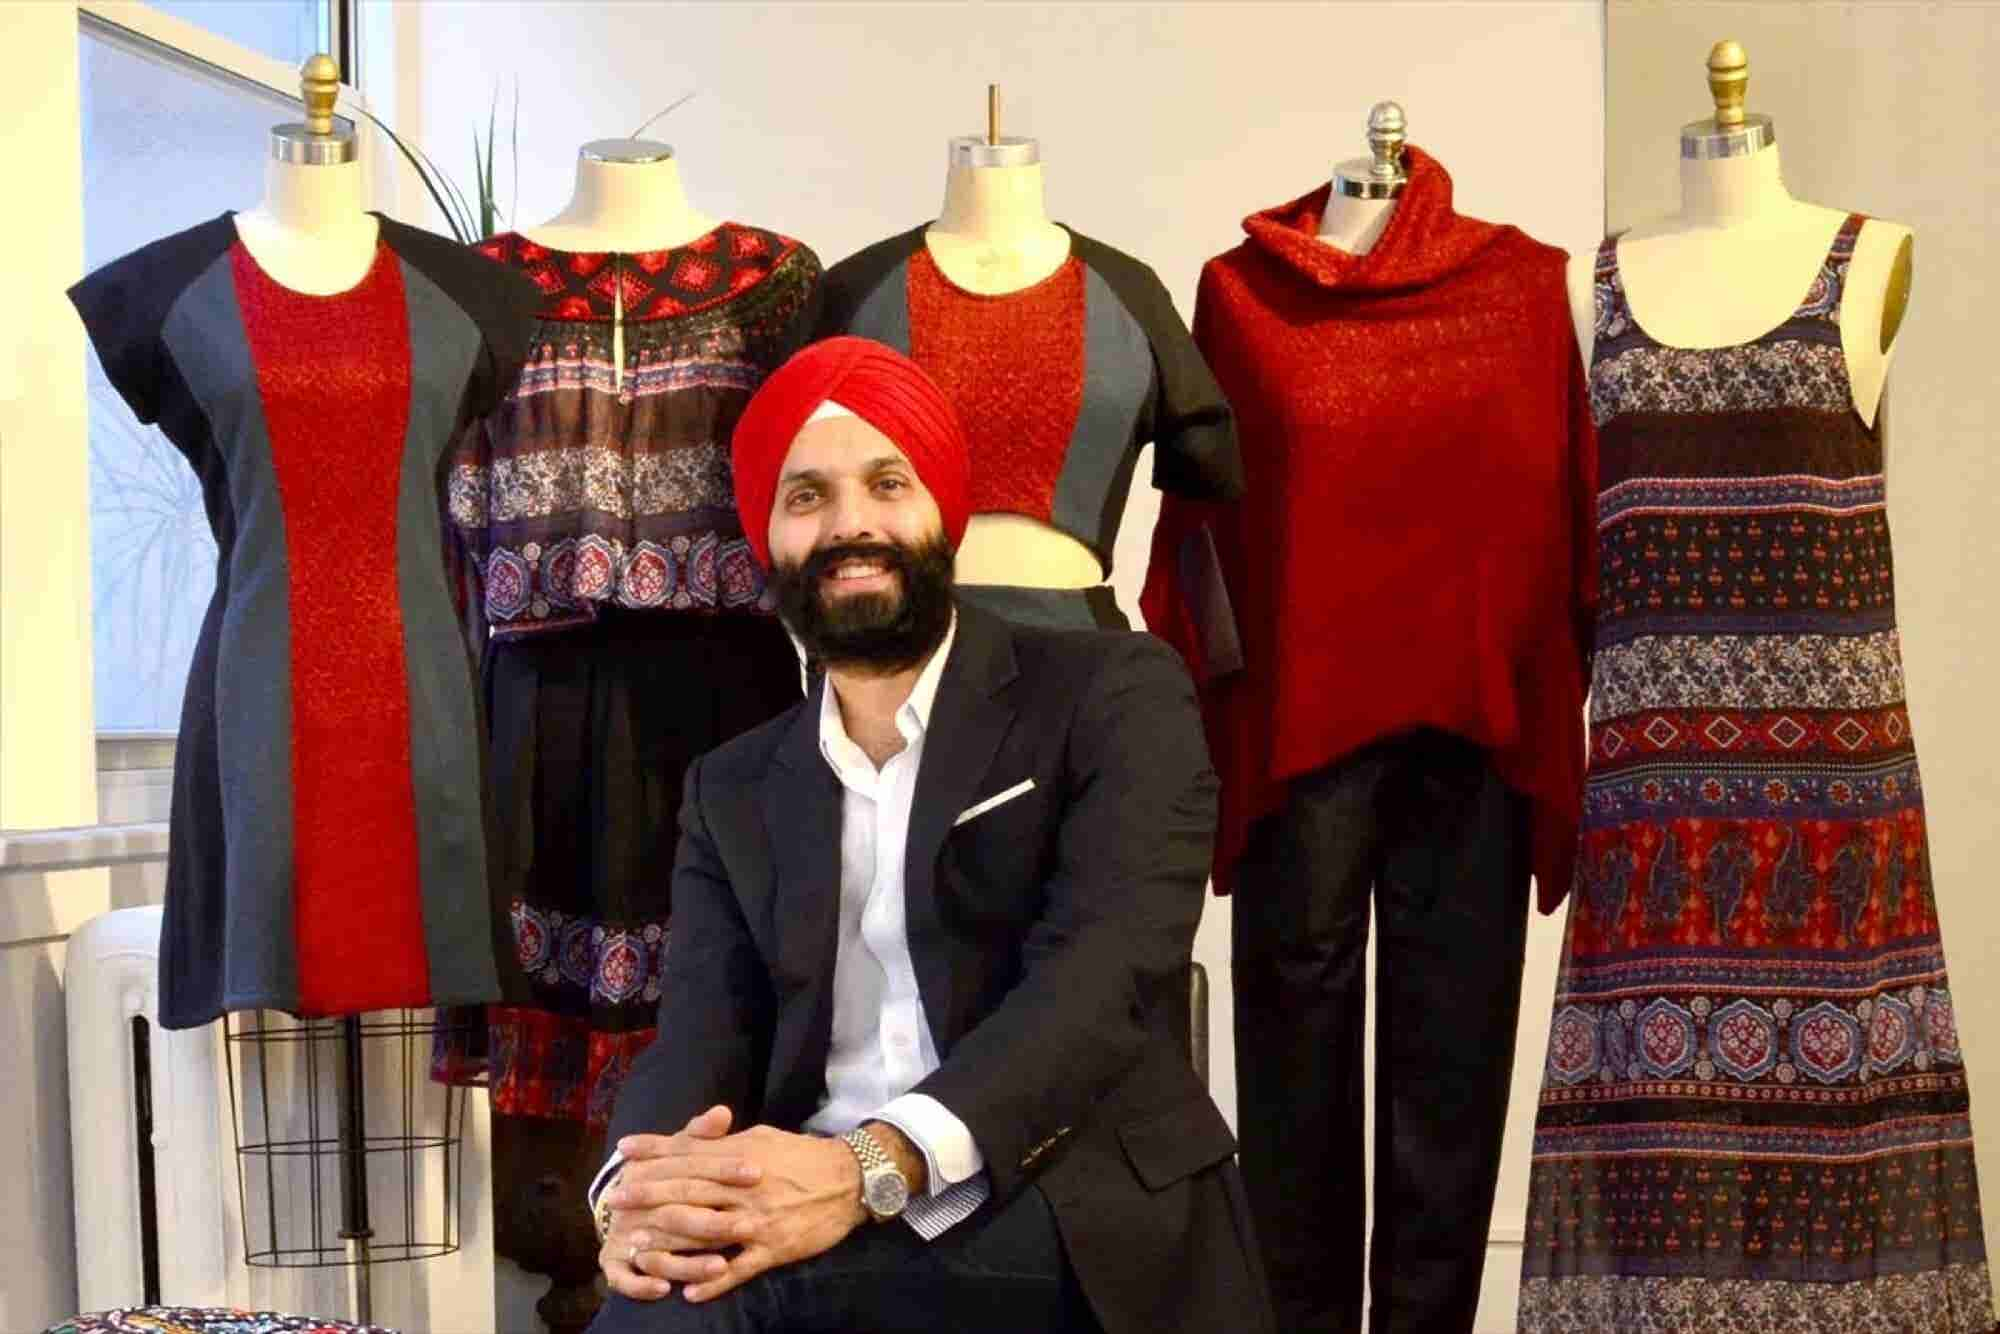 KAS New York: A dreamer's journey from Finance to Fashion